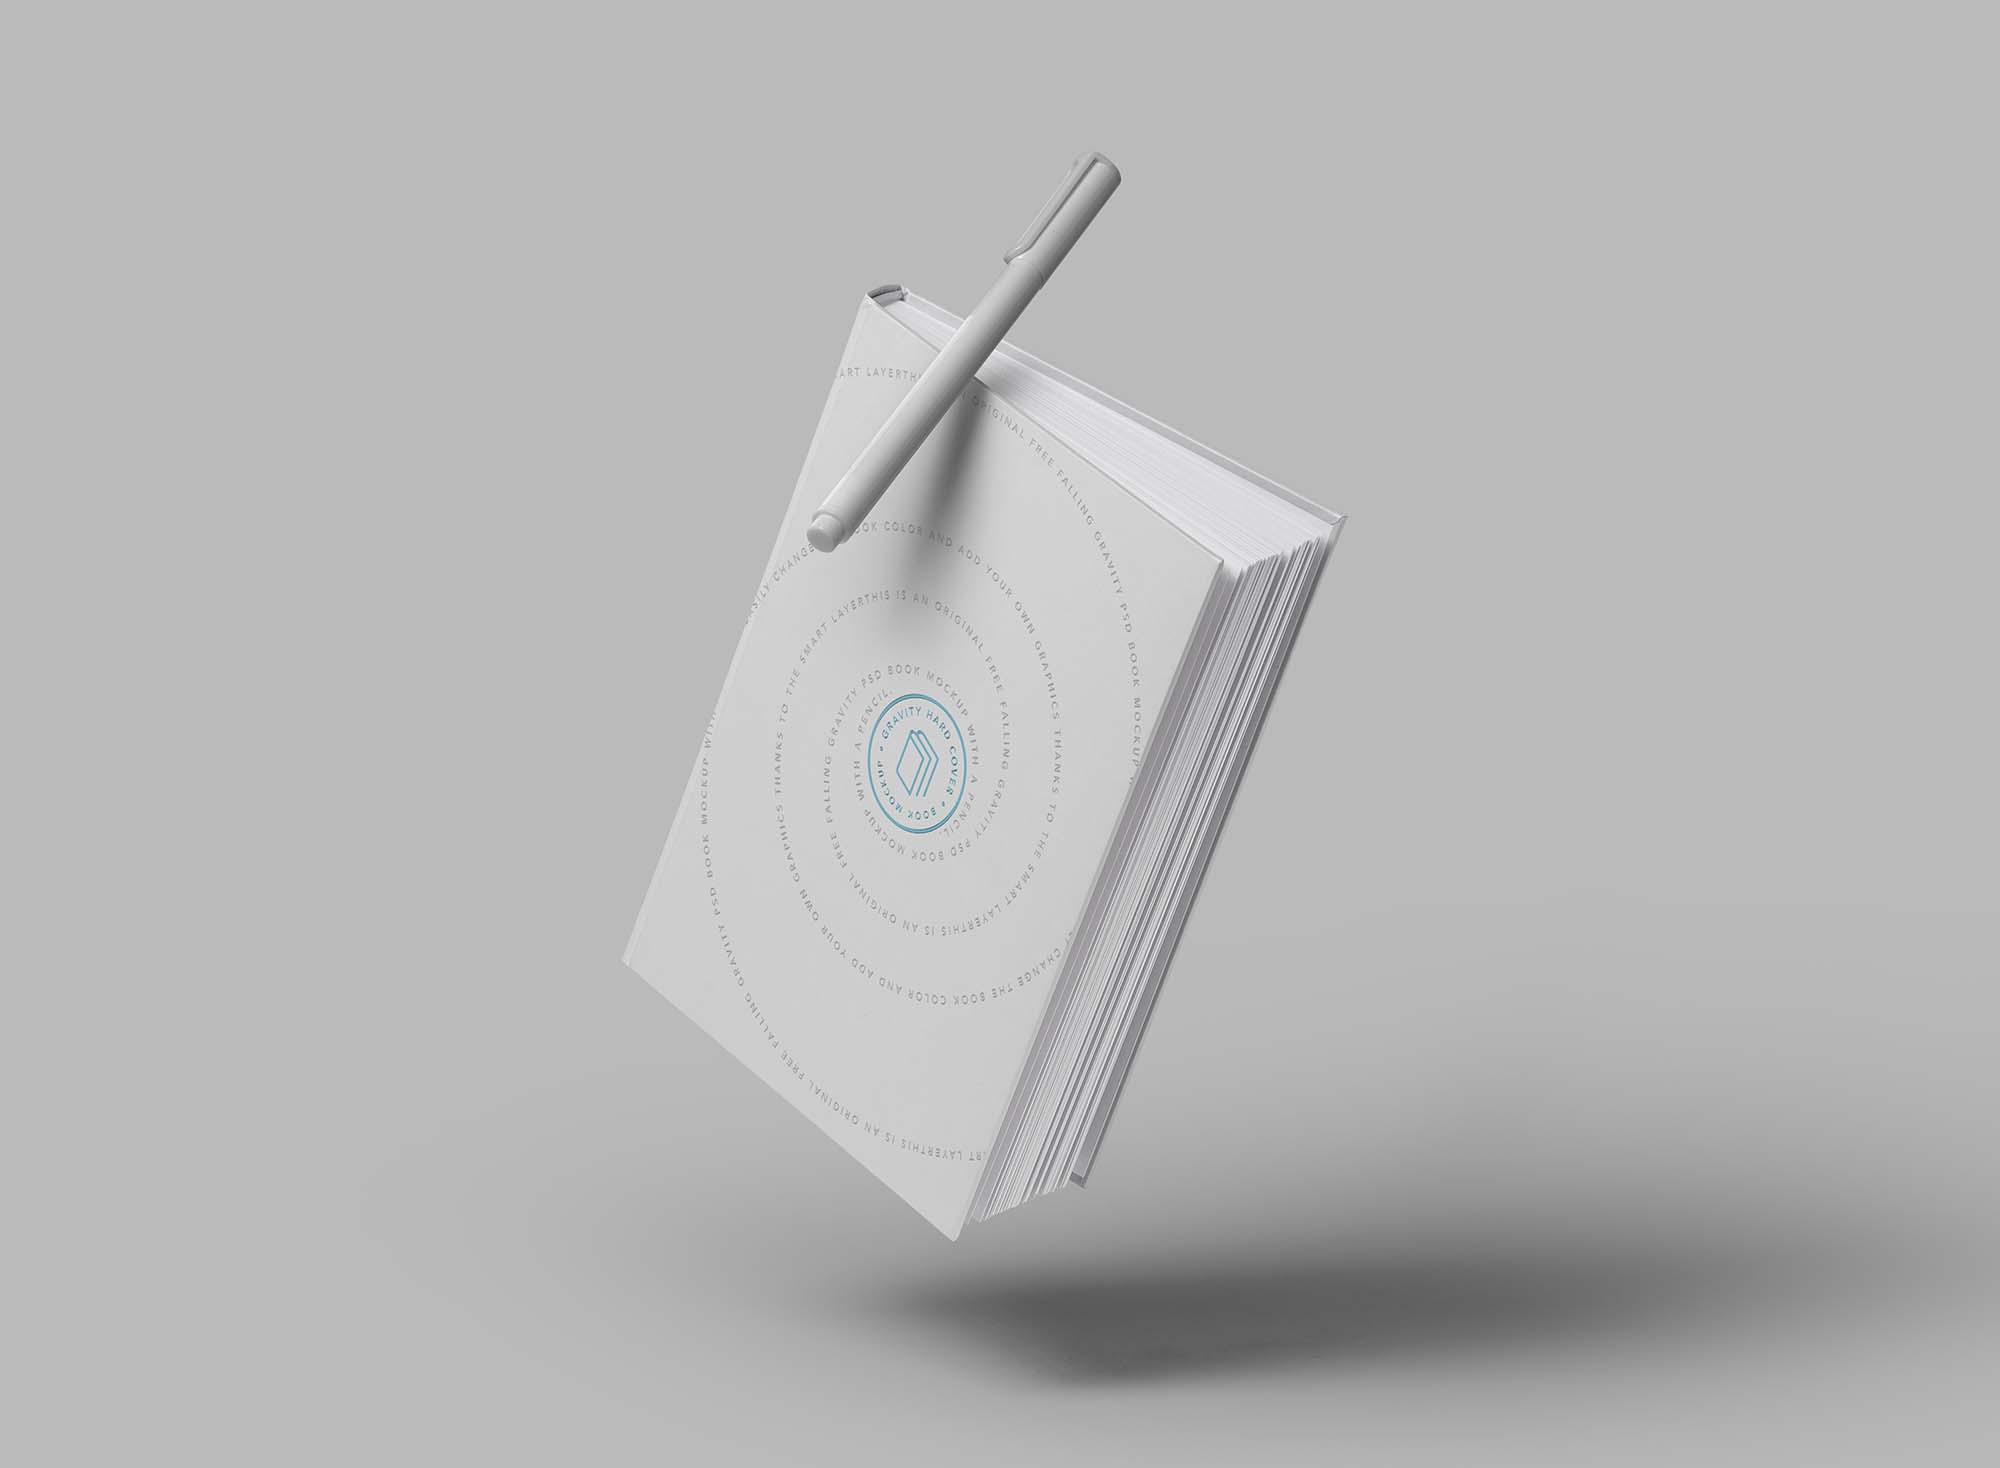 Gravity Hard Cover Book Mockup